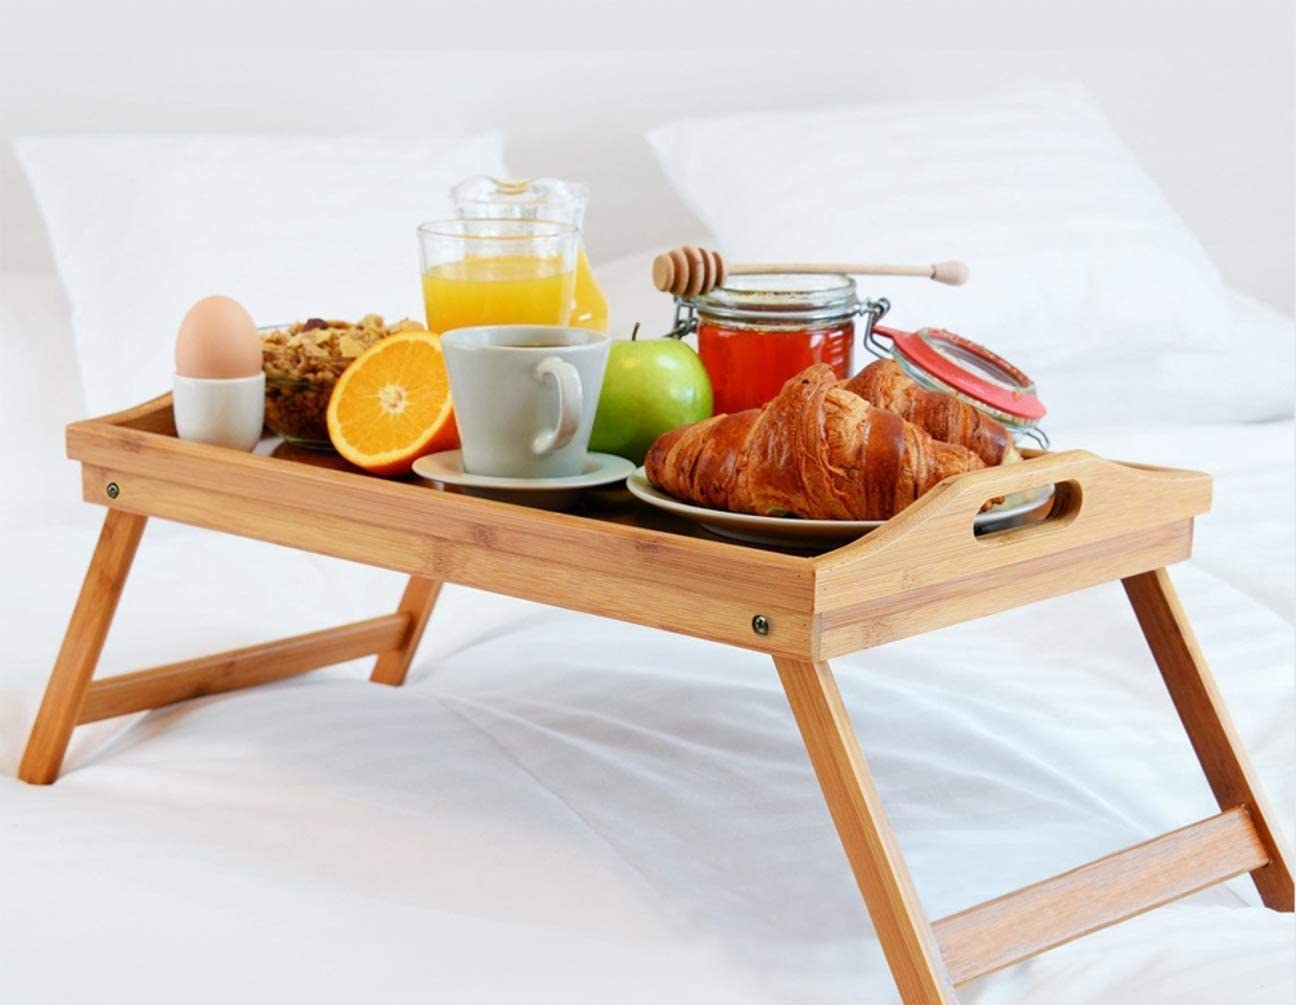 A tray on a bed with breakfast foods